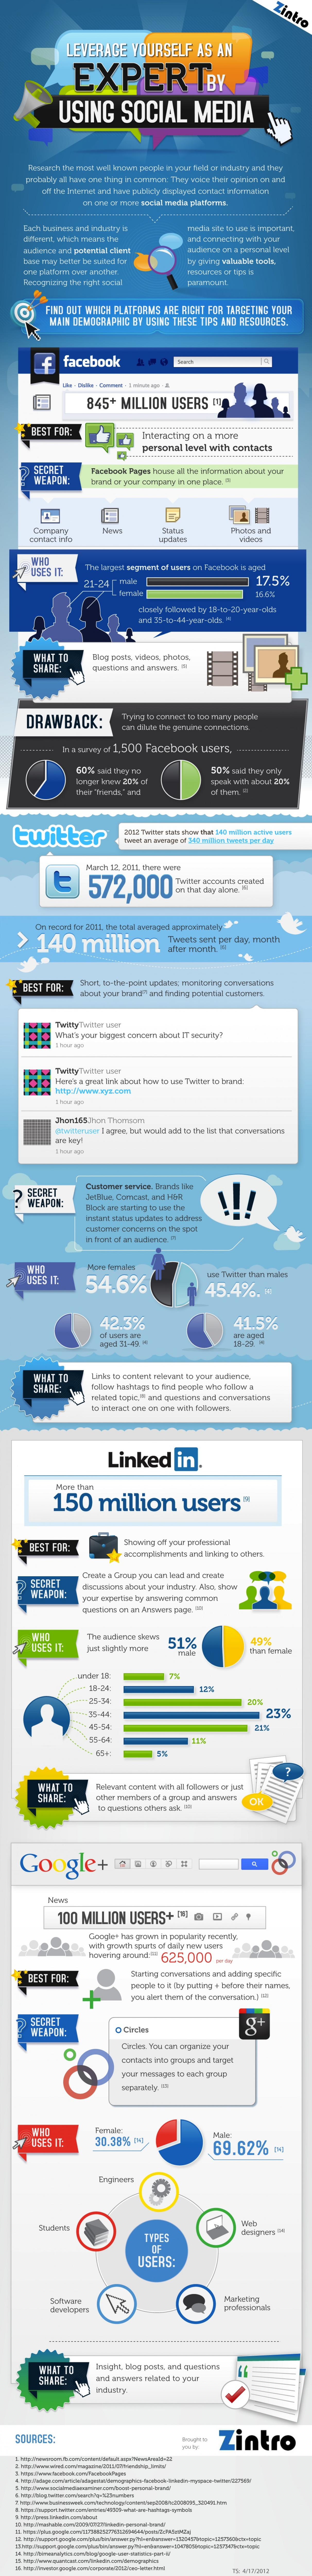 Leverage Yourself as an Expert by Using Social Media Infographic